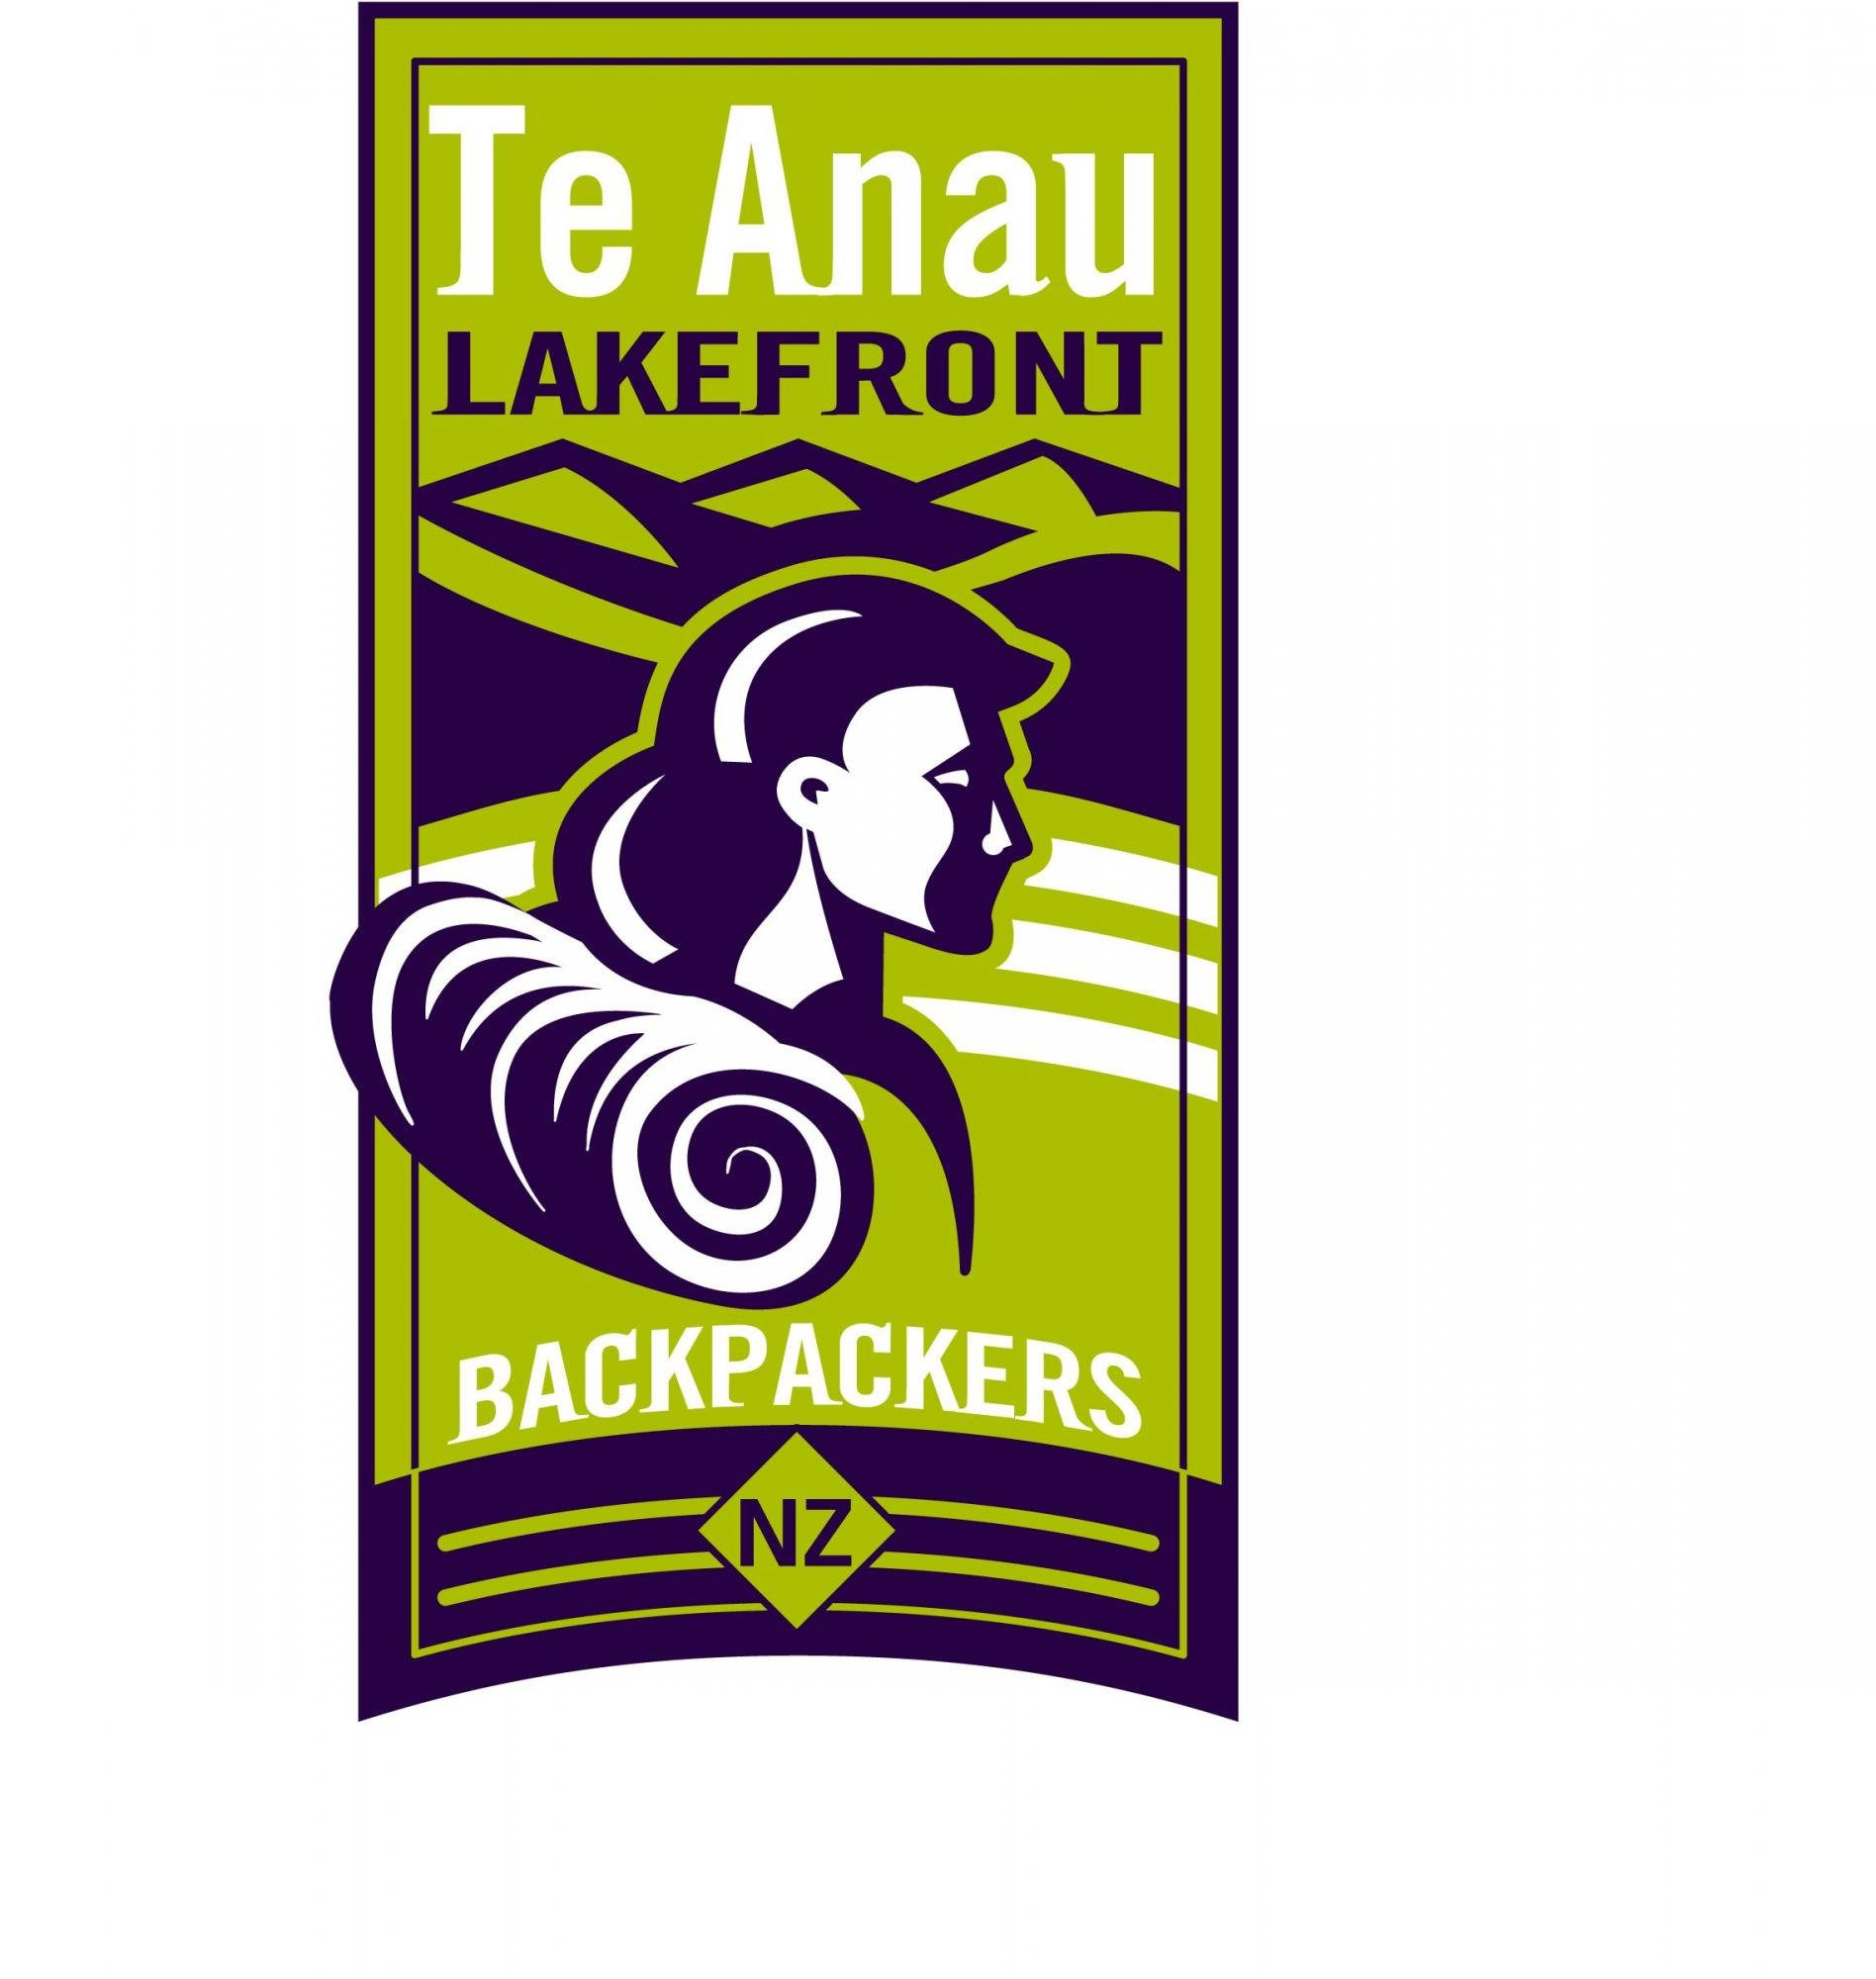 Te Anau Lakefront Backpackers 2